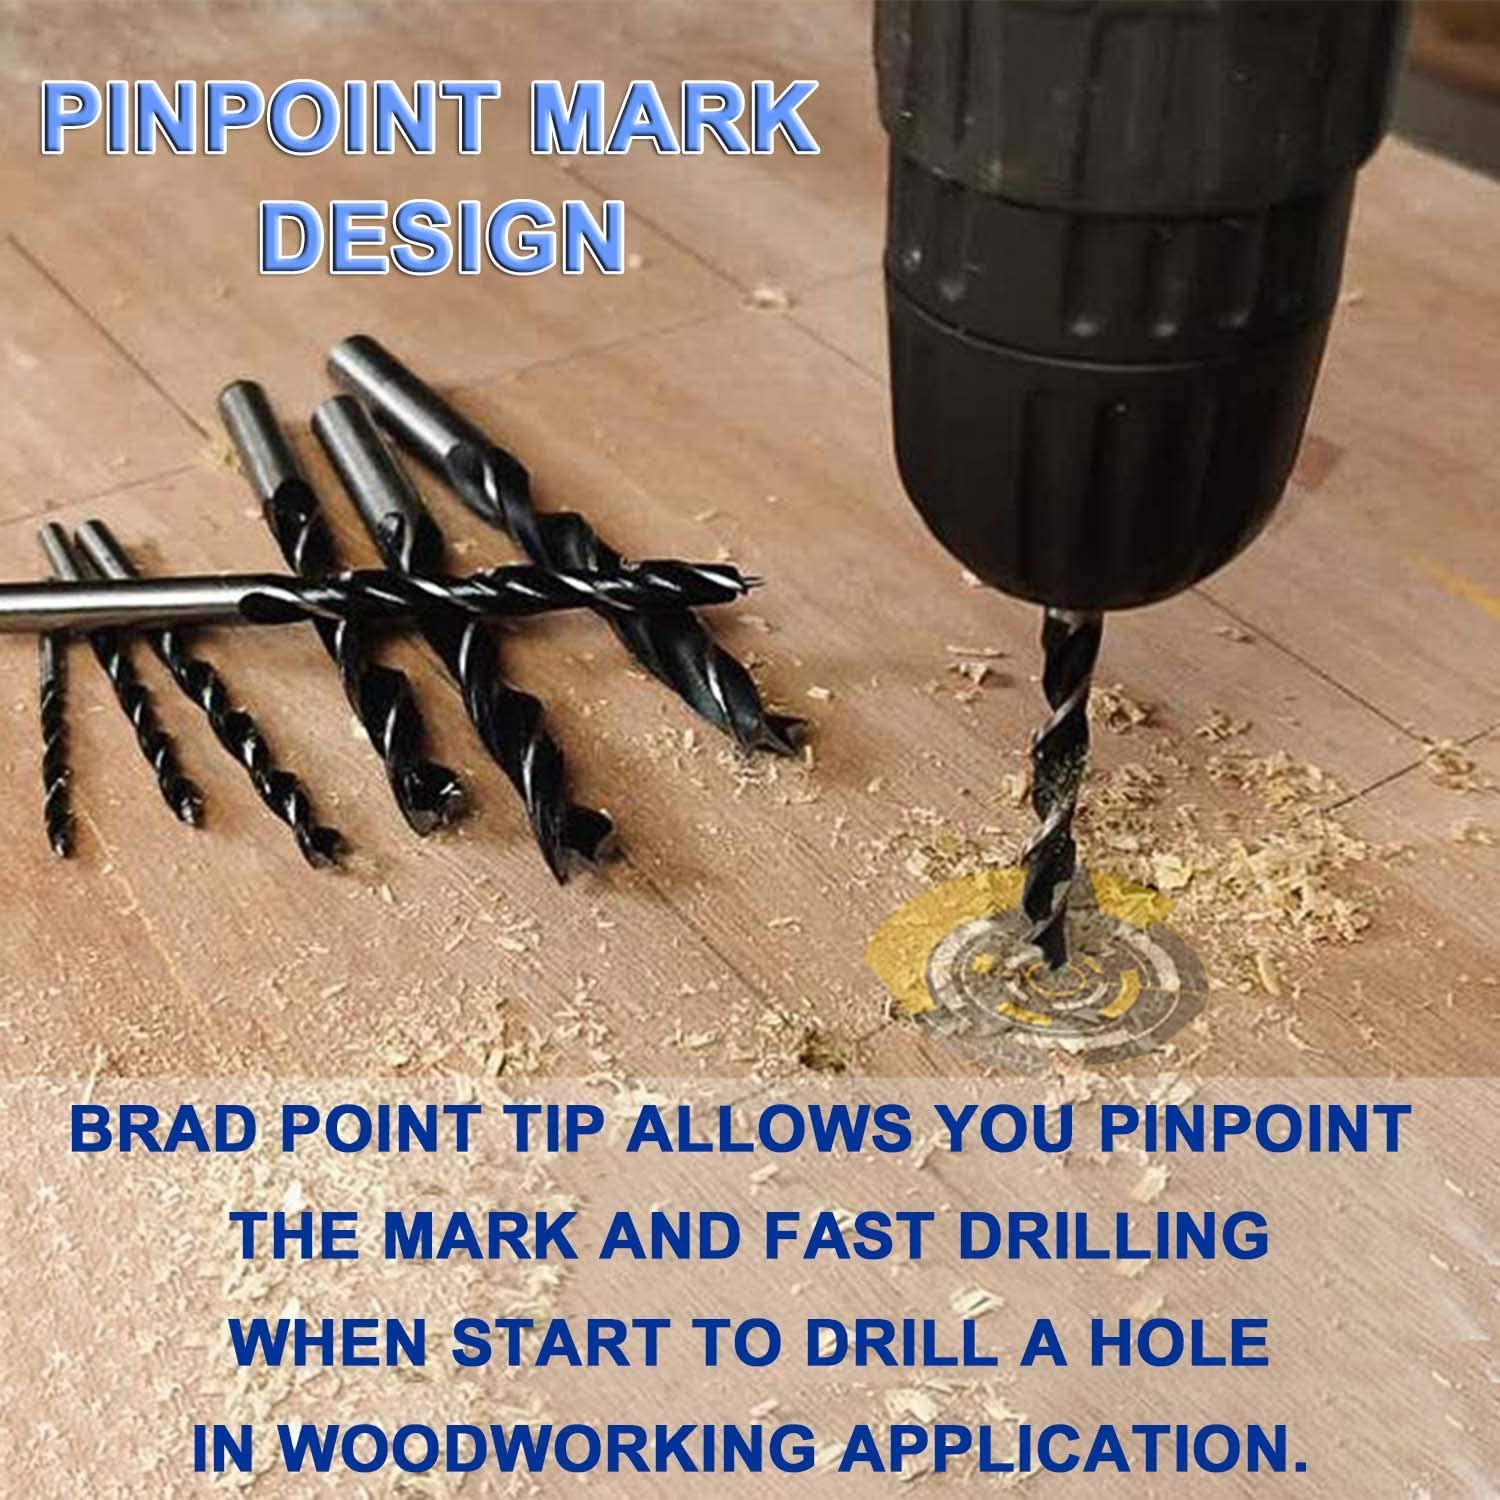 Brad Point Drill Bits 8 Pcs 3-10mm Spur Point Spiral Twist Wood Metric Drill Bits with Durable Case Wood Working Tool for Hardwood or Softwood